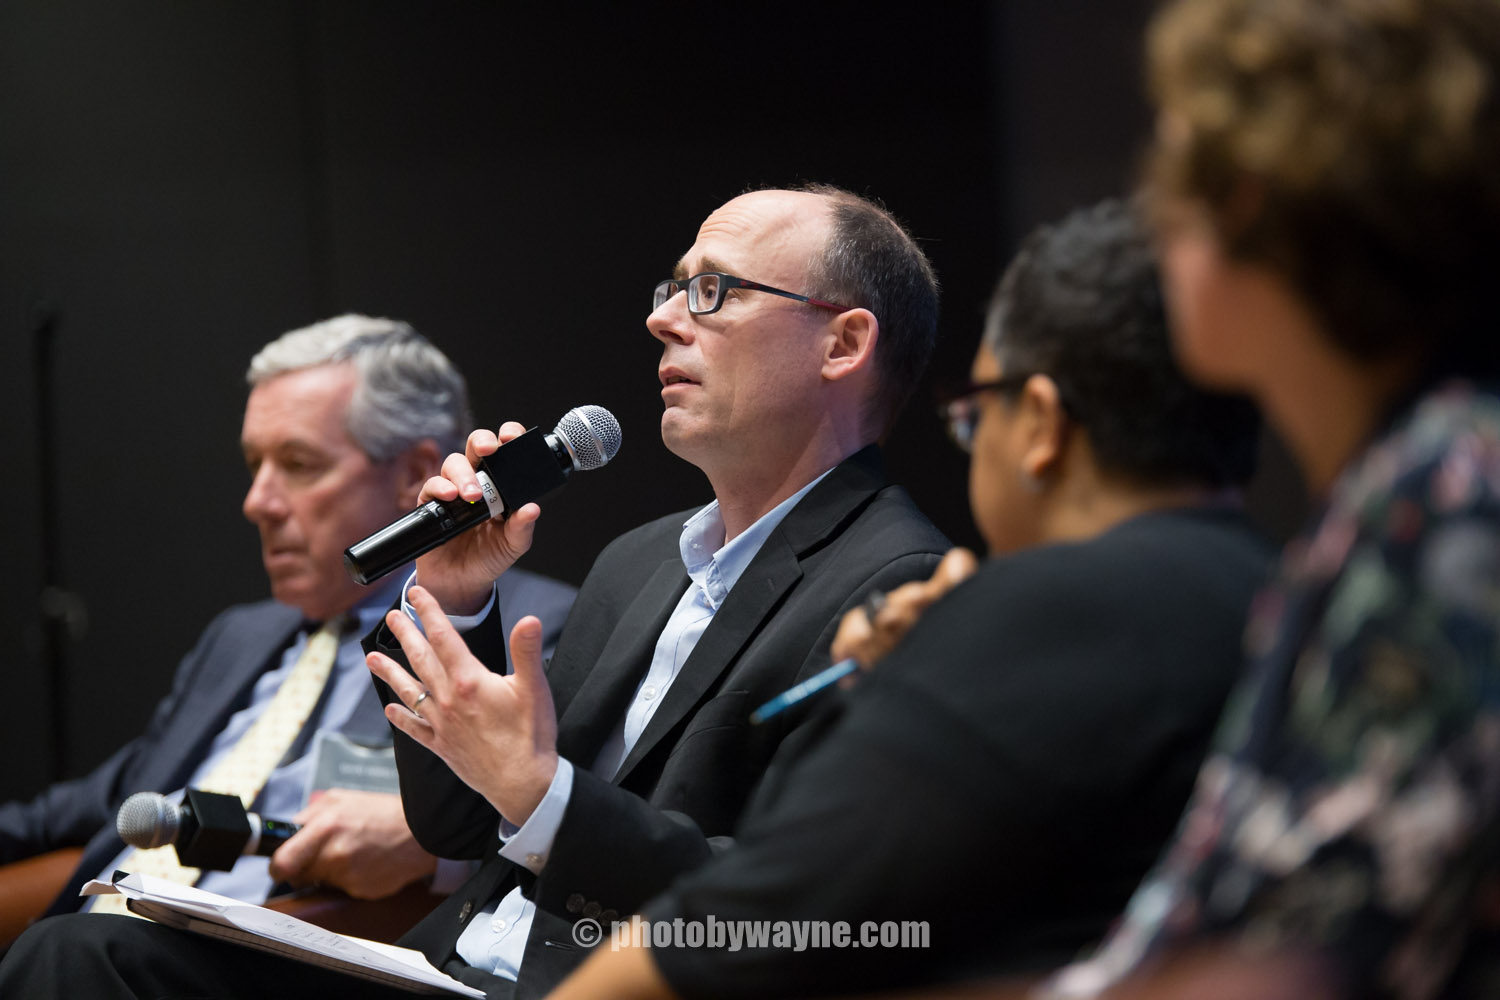 16-basic-income-guarantee-conference-guest-responding-to-questions.jpg